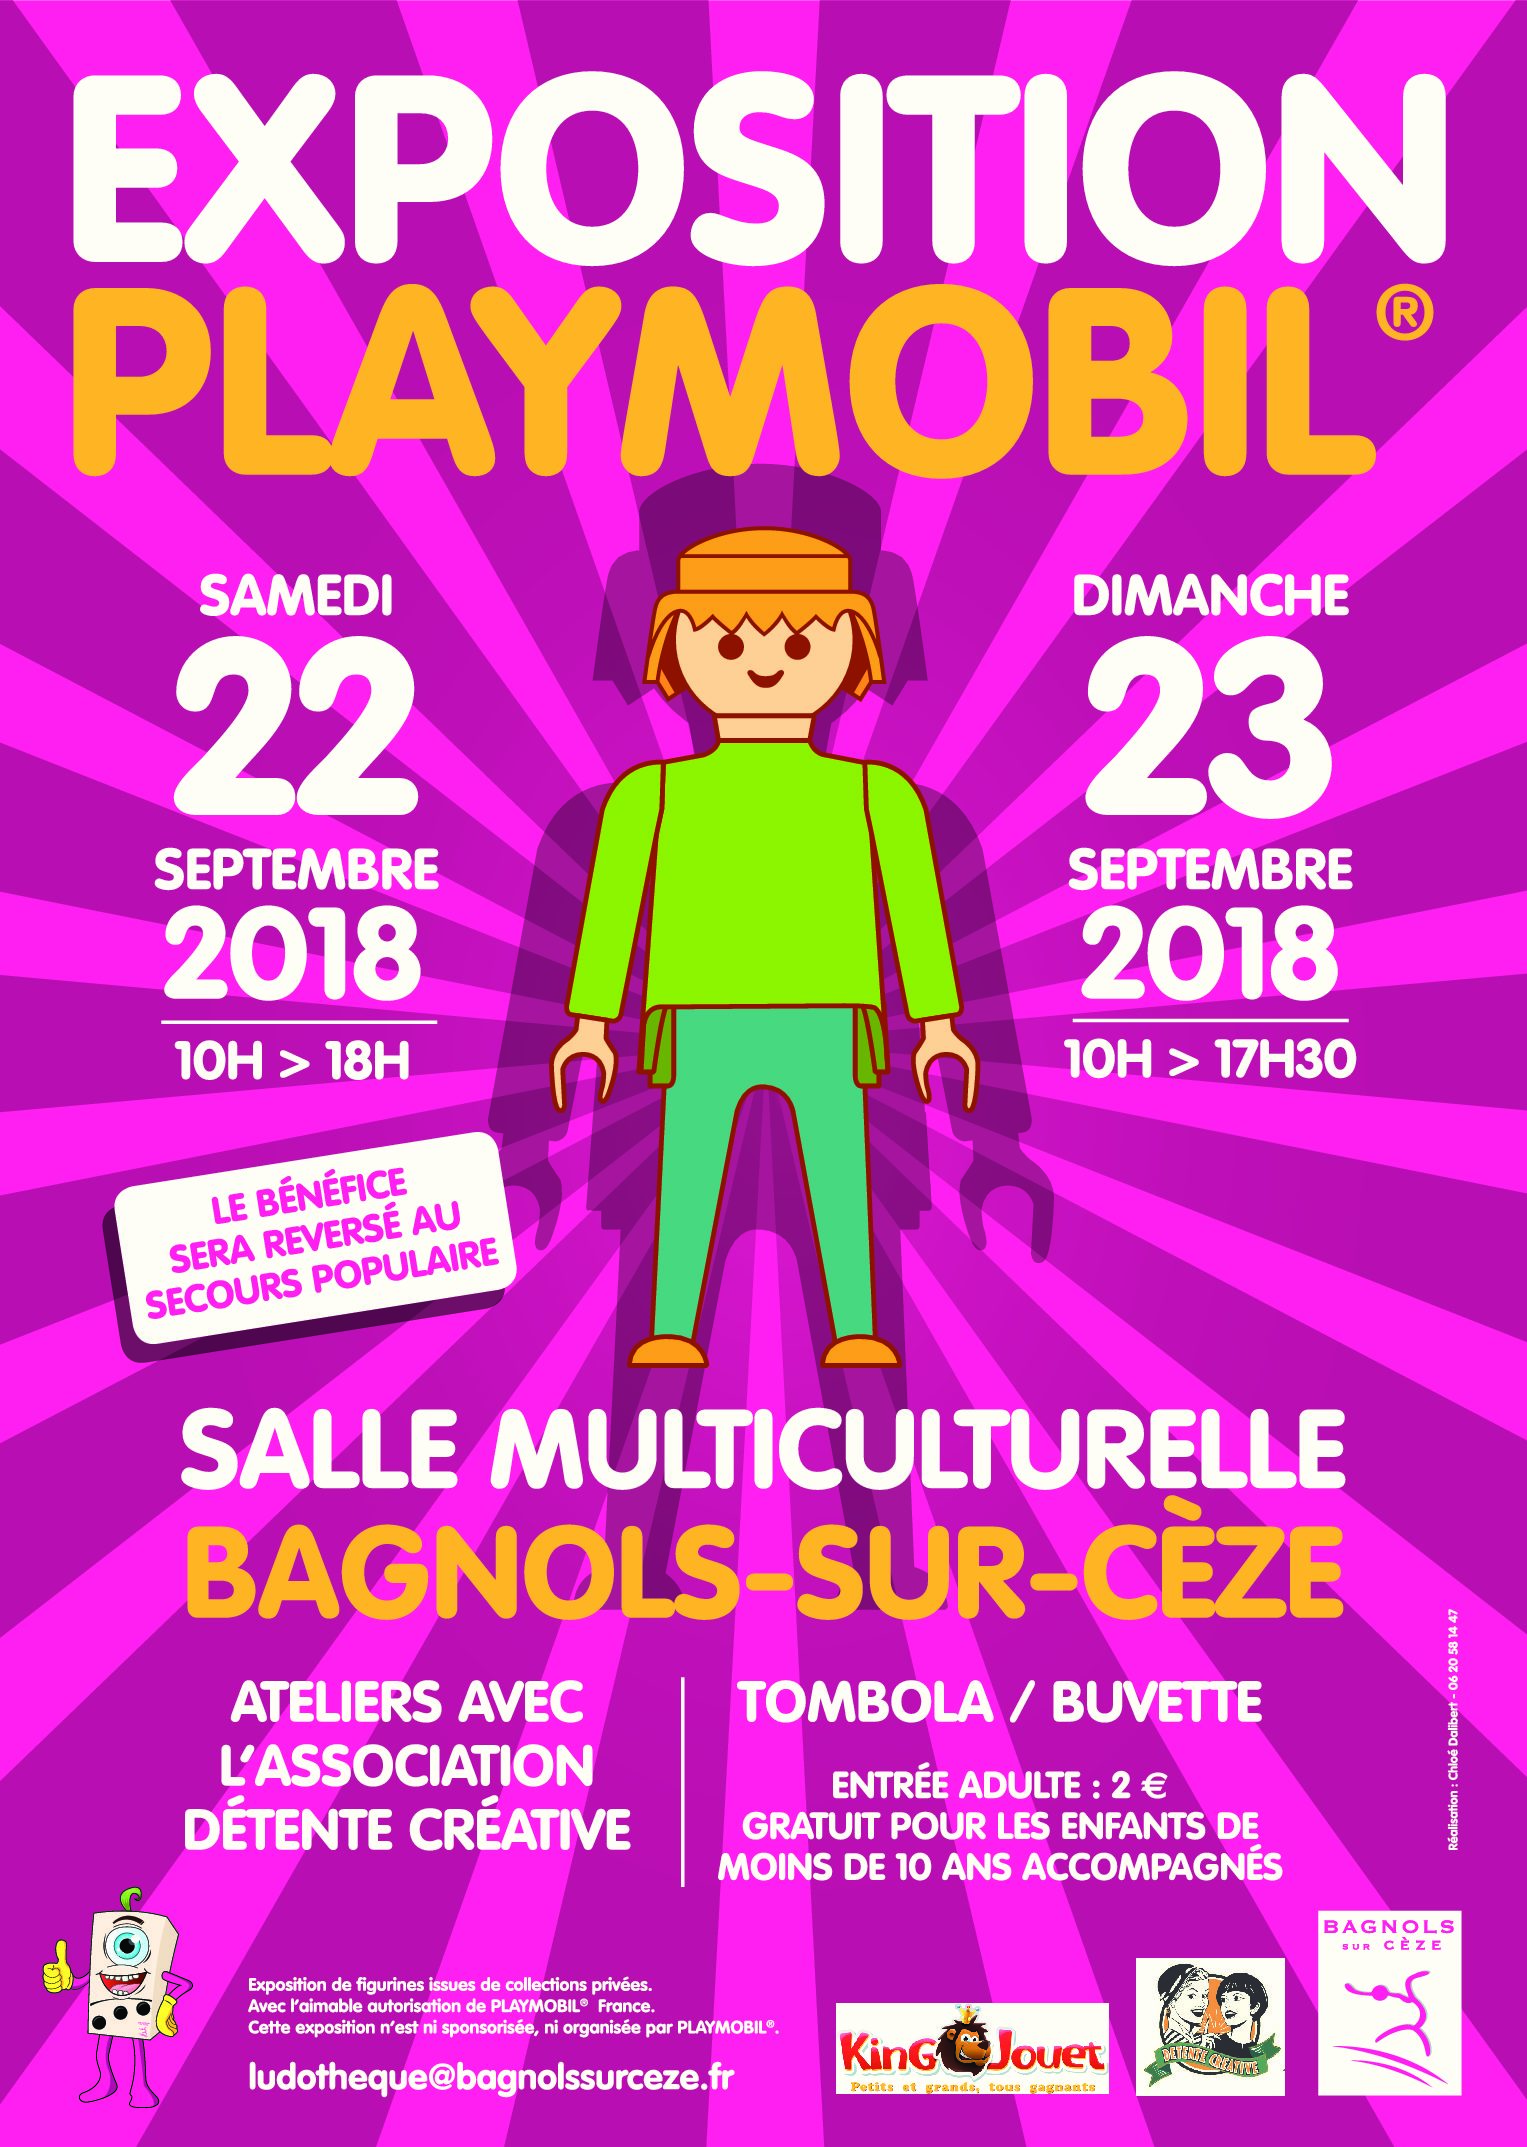 Exposition Playmobil®